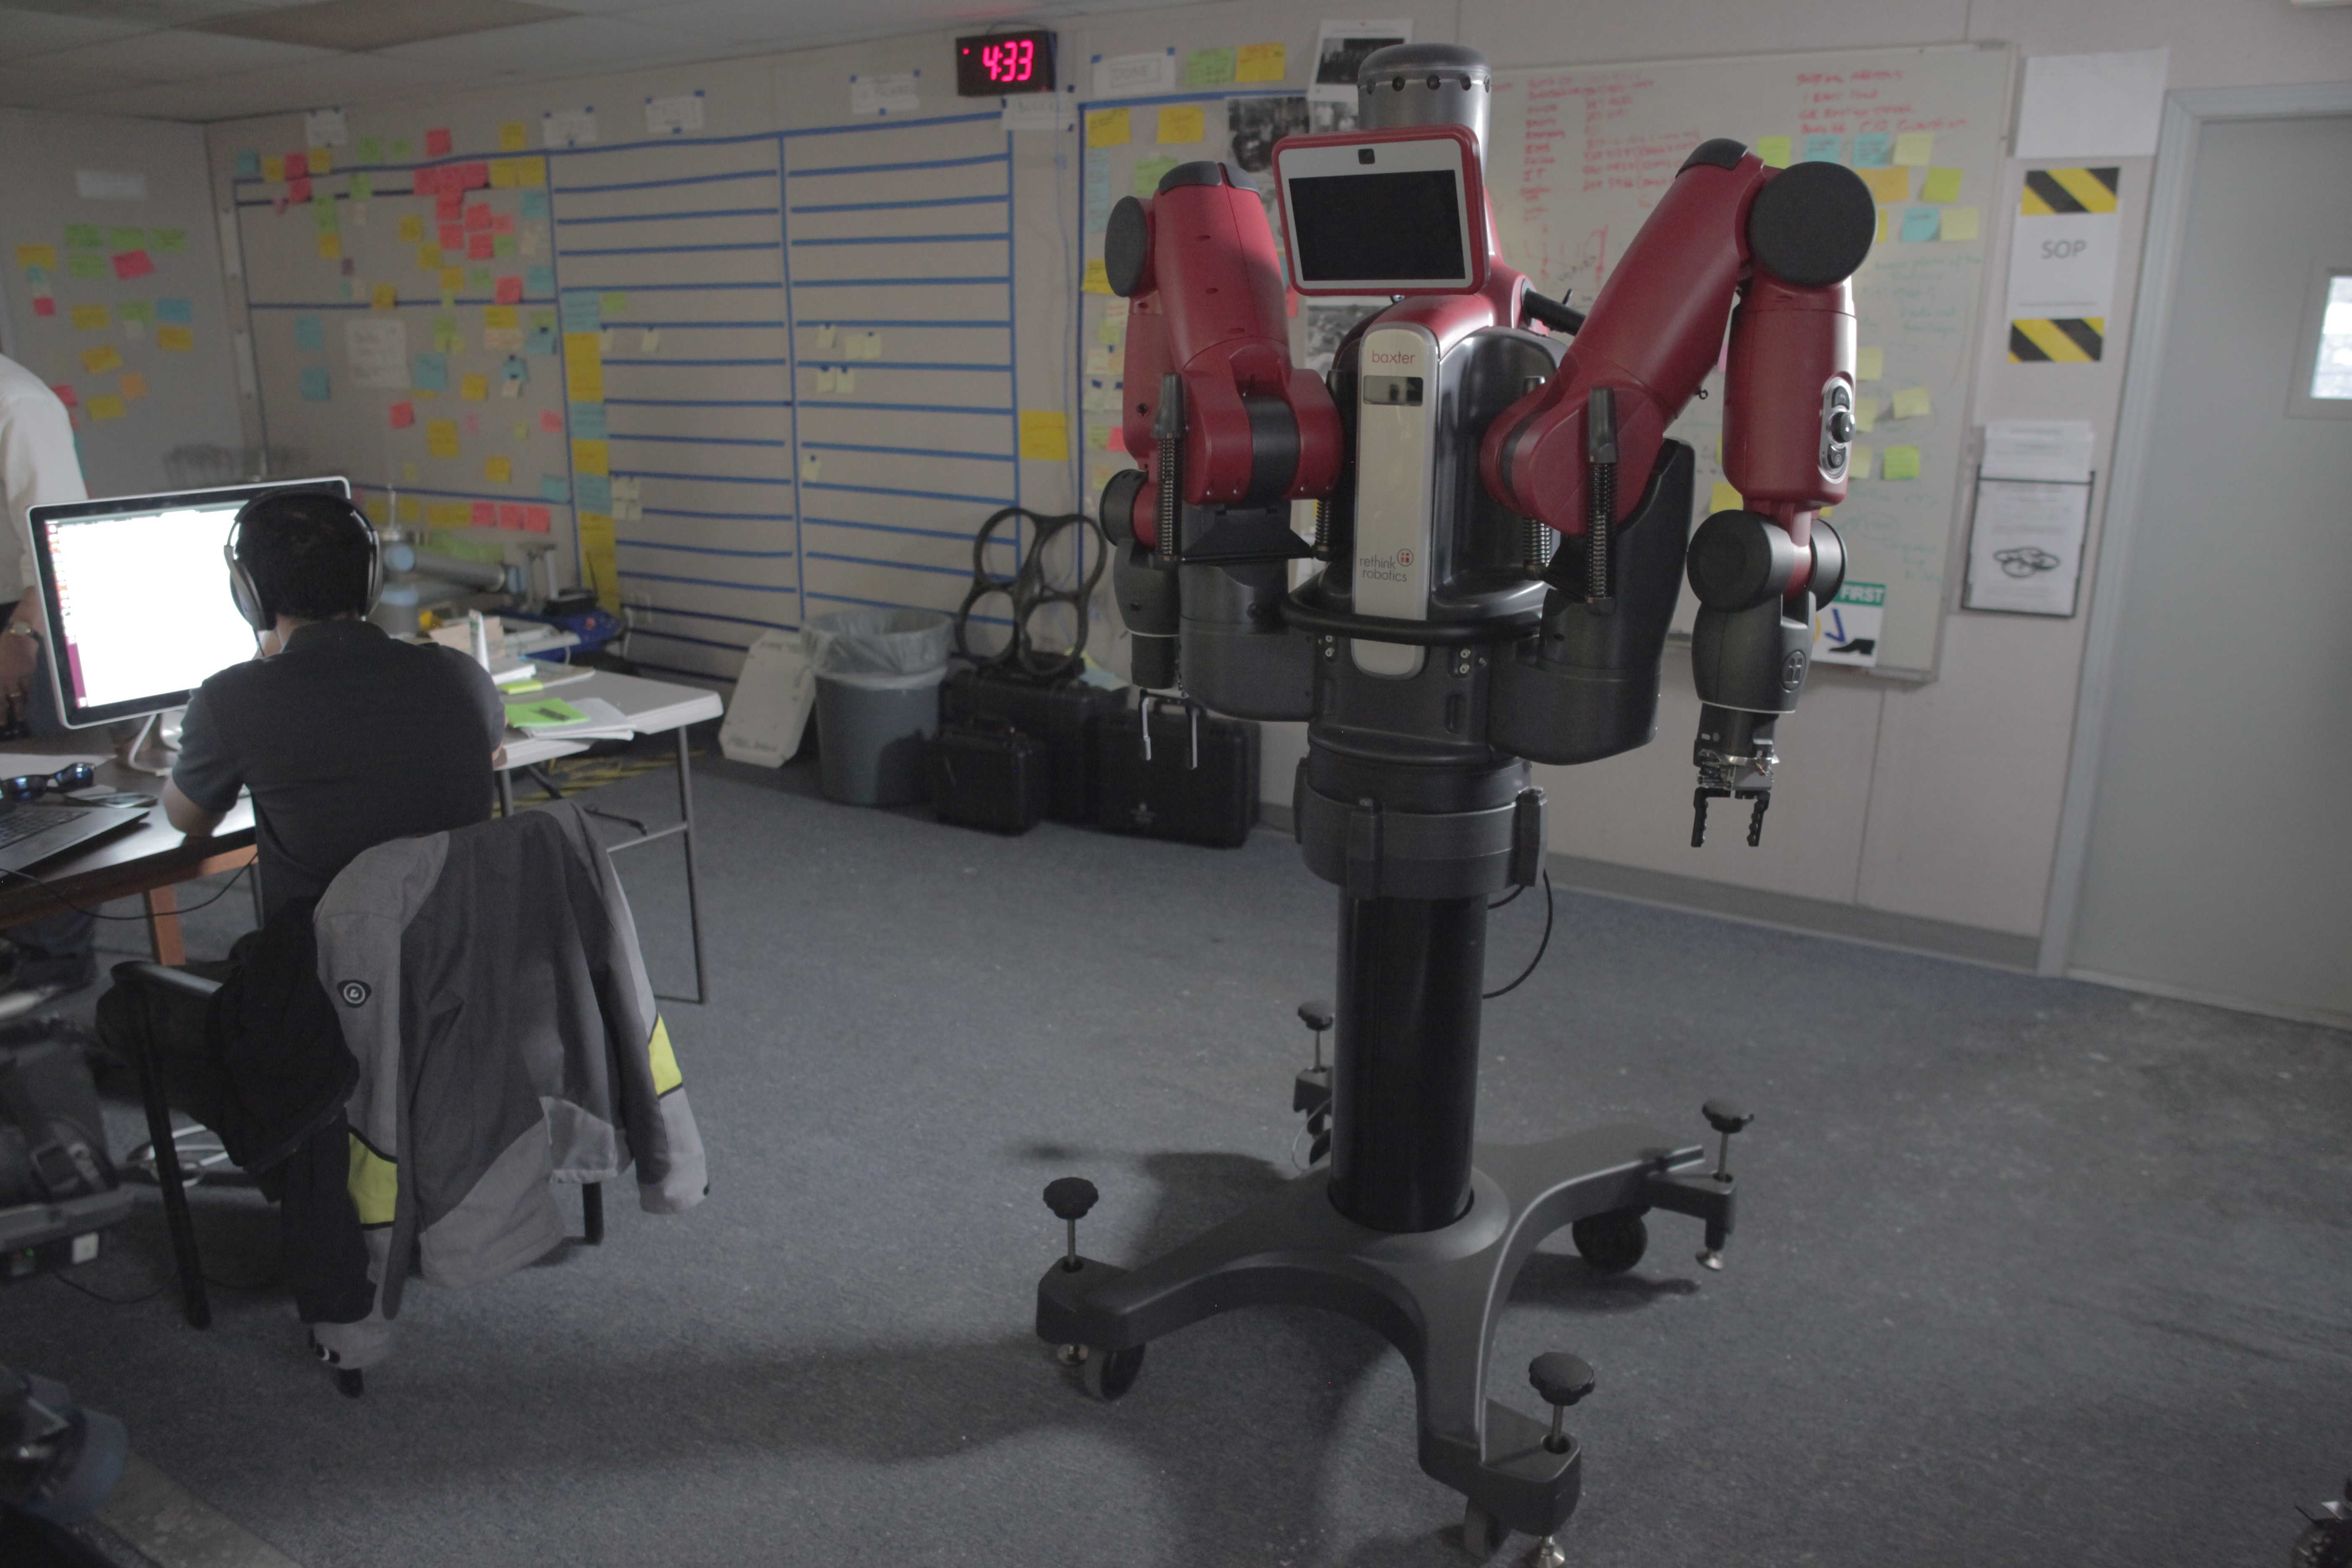 One of the multipurpose robots being used in experiments at GE Global Research in Schenectady, New York.